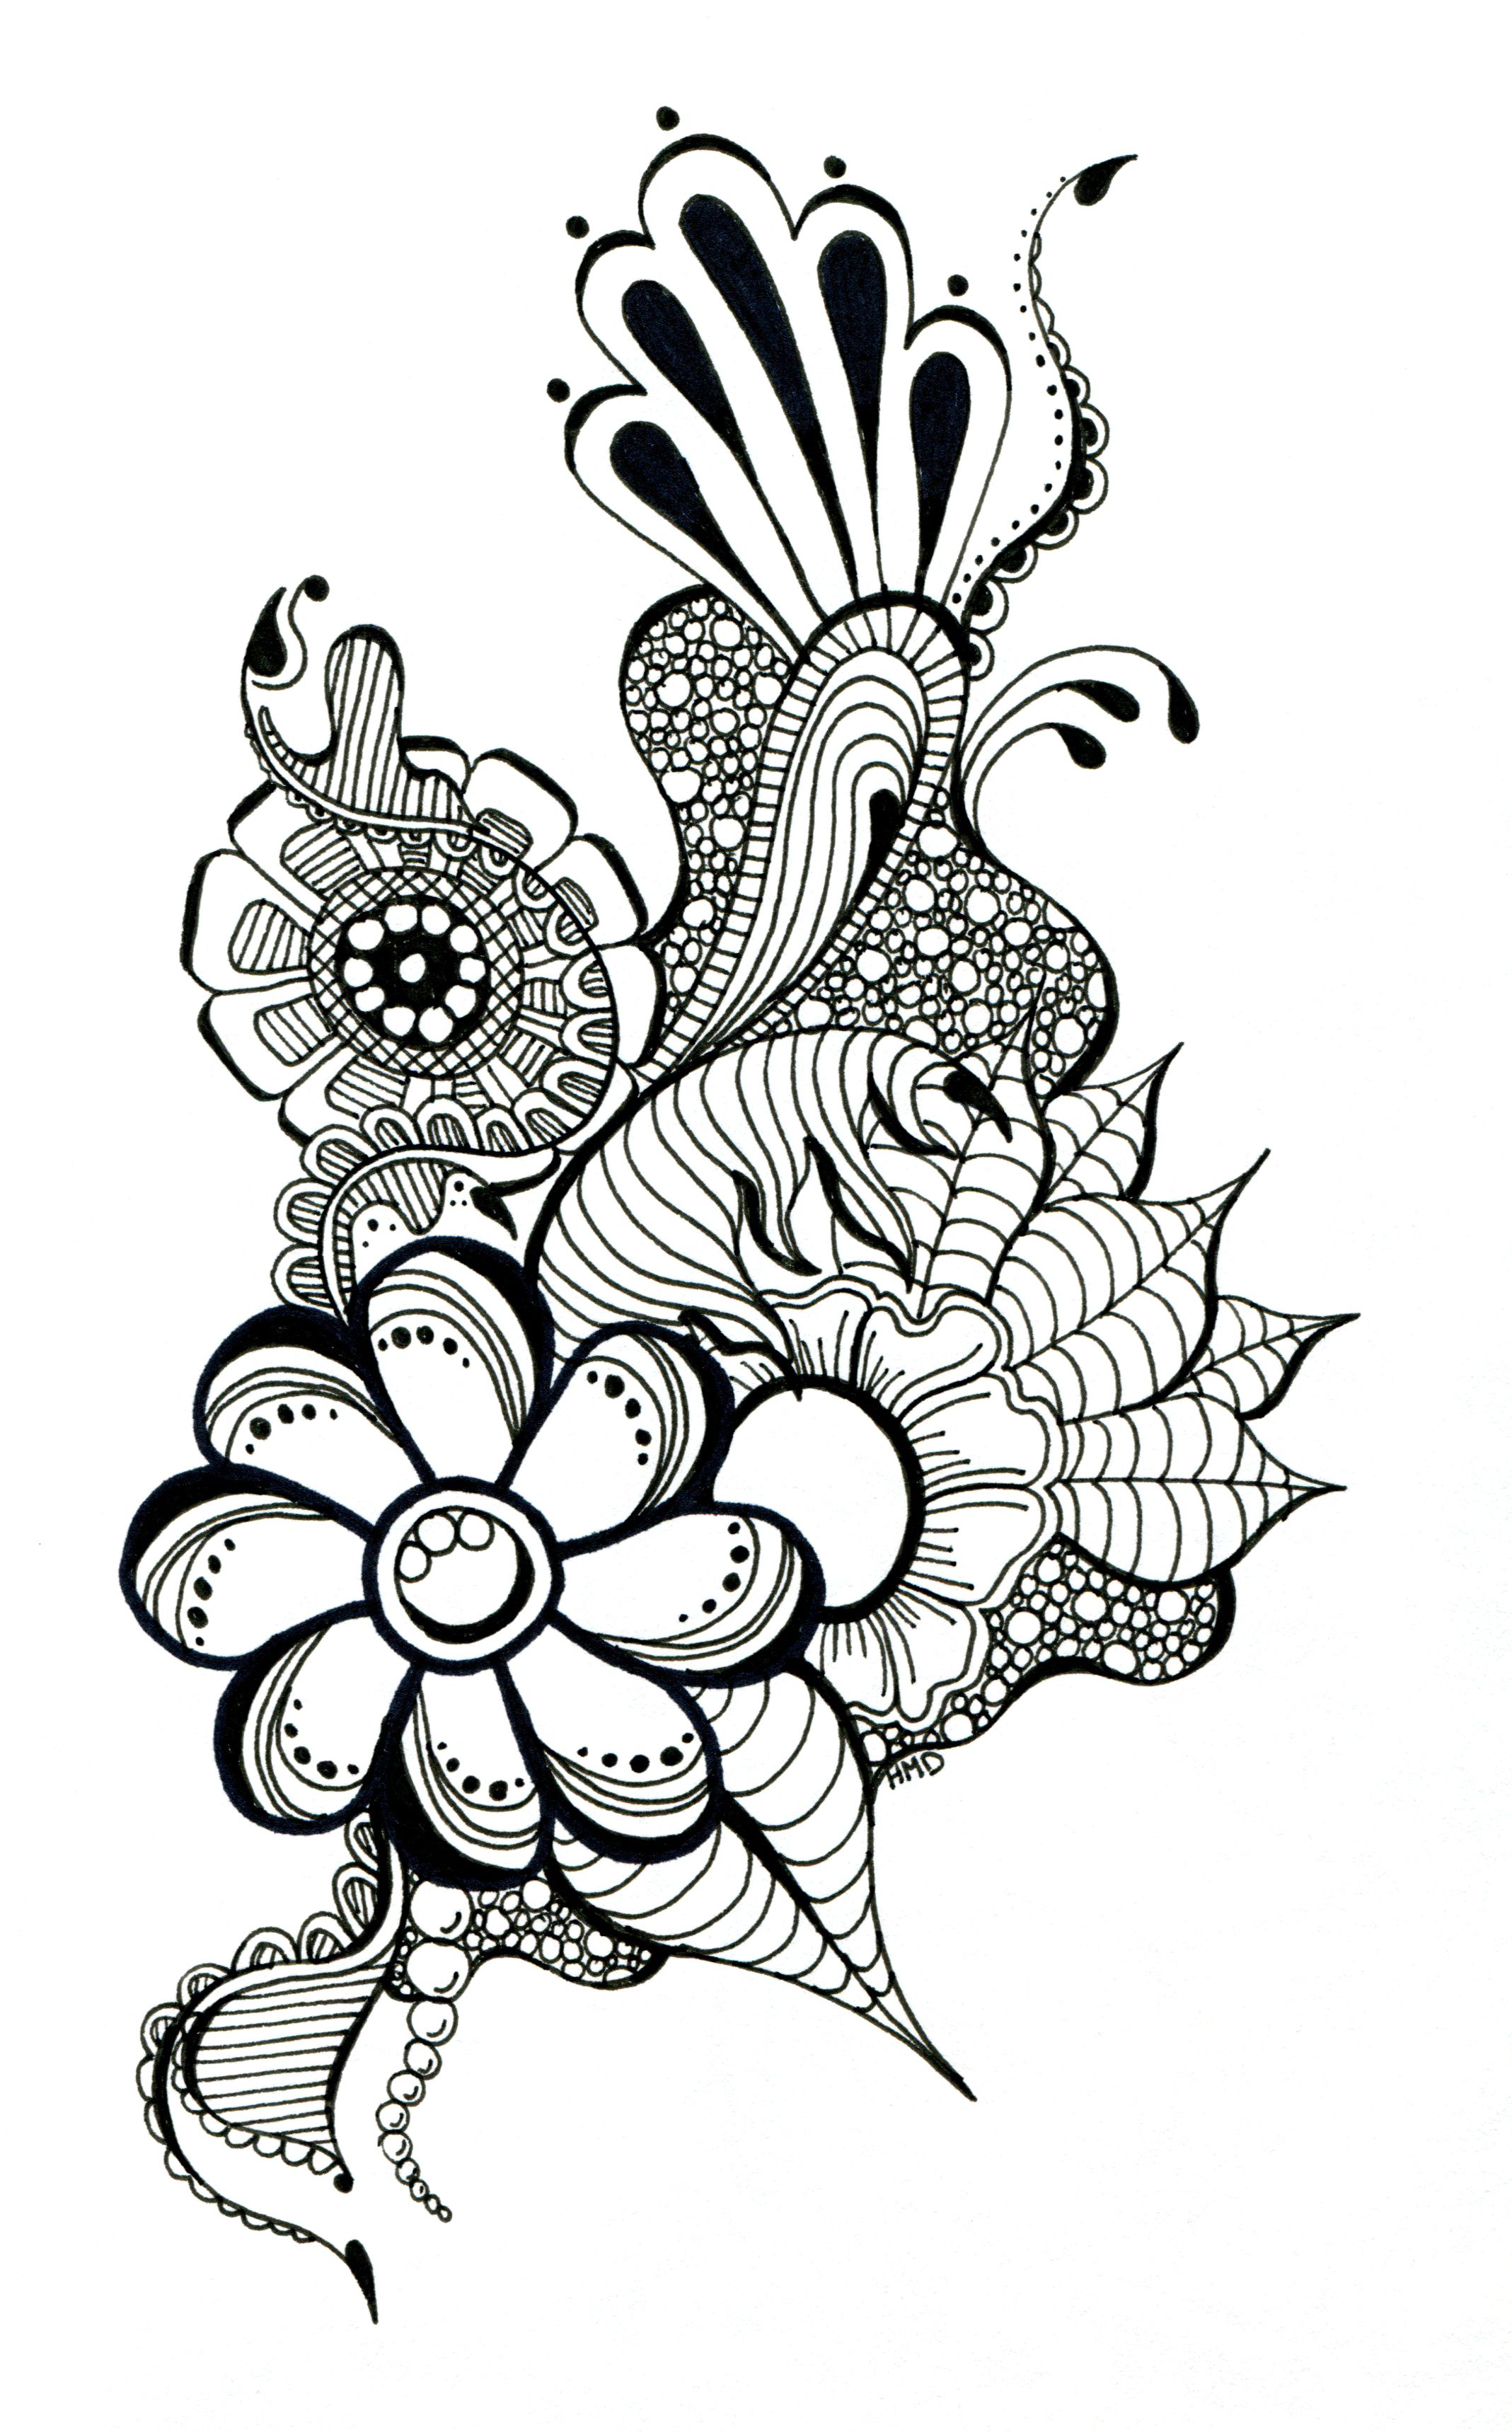 trippy flower doodles